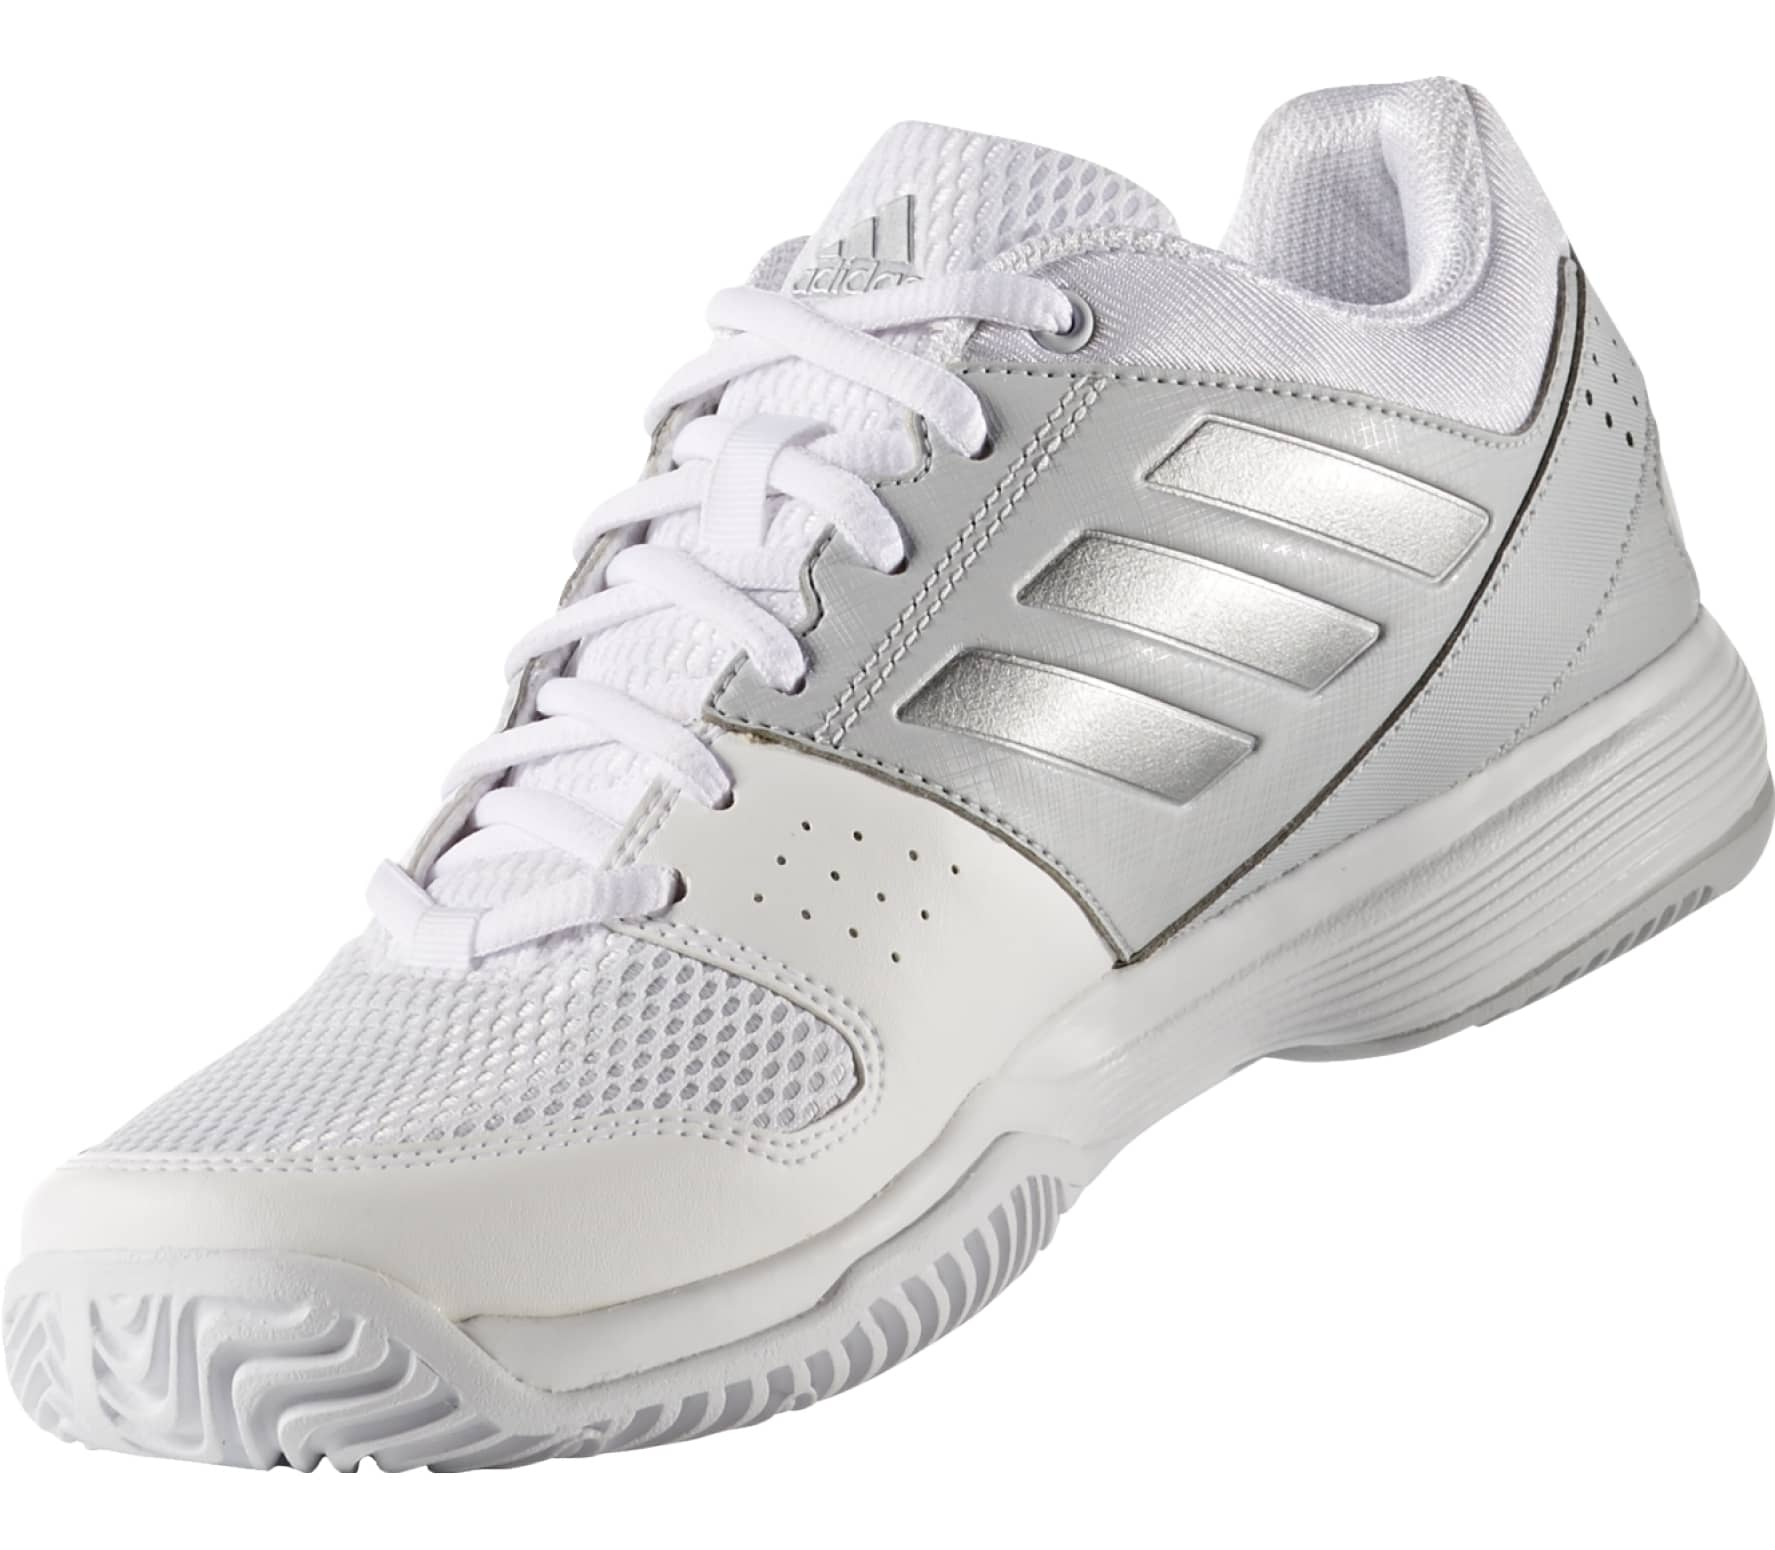 ec912767271 Adidas - Barricade Court women s tennis shoes (white silver) - buy ...